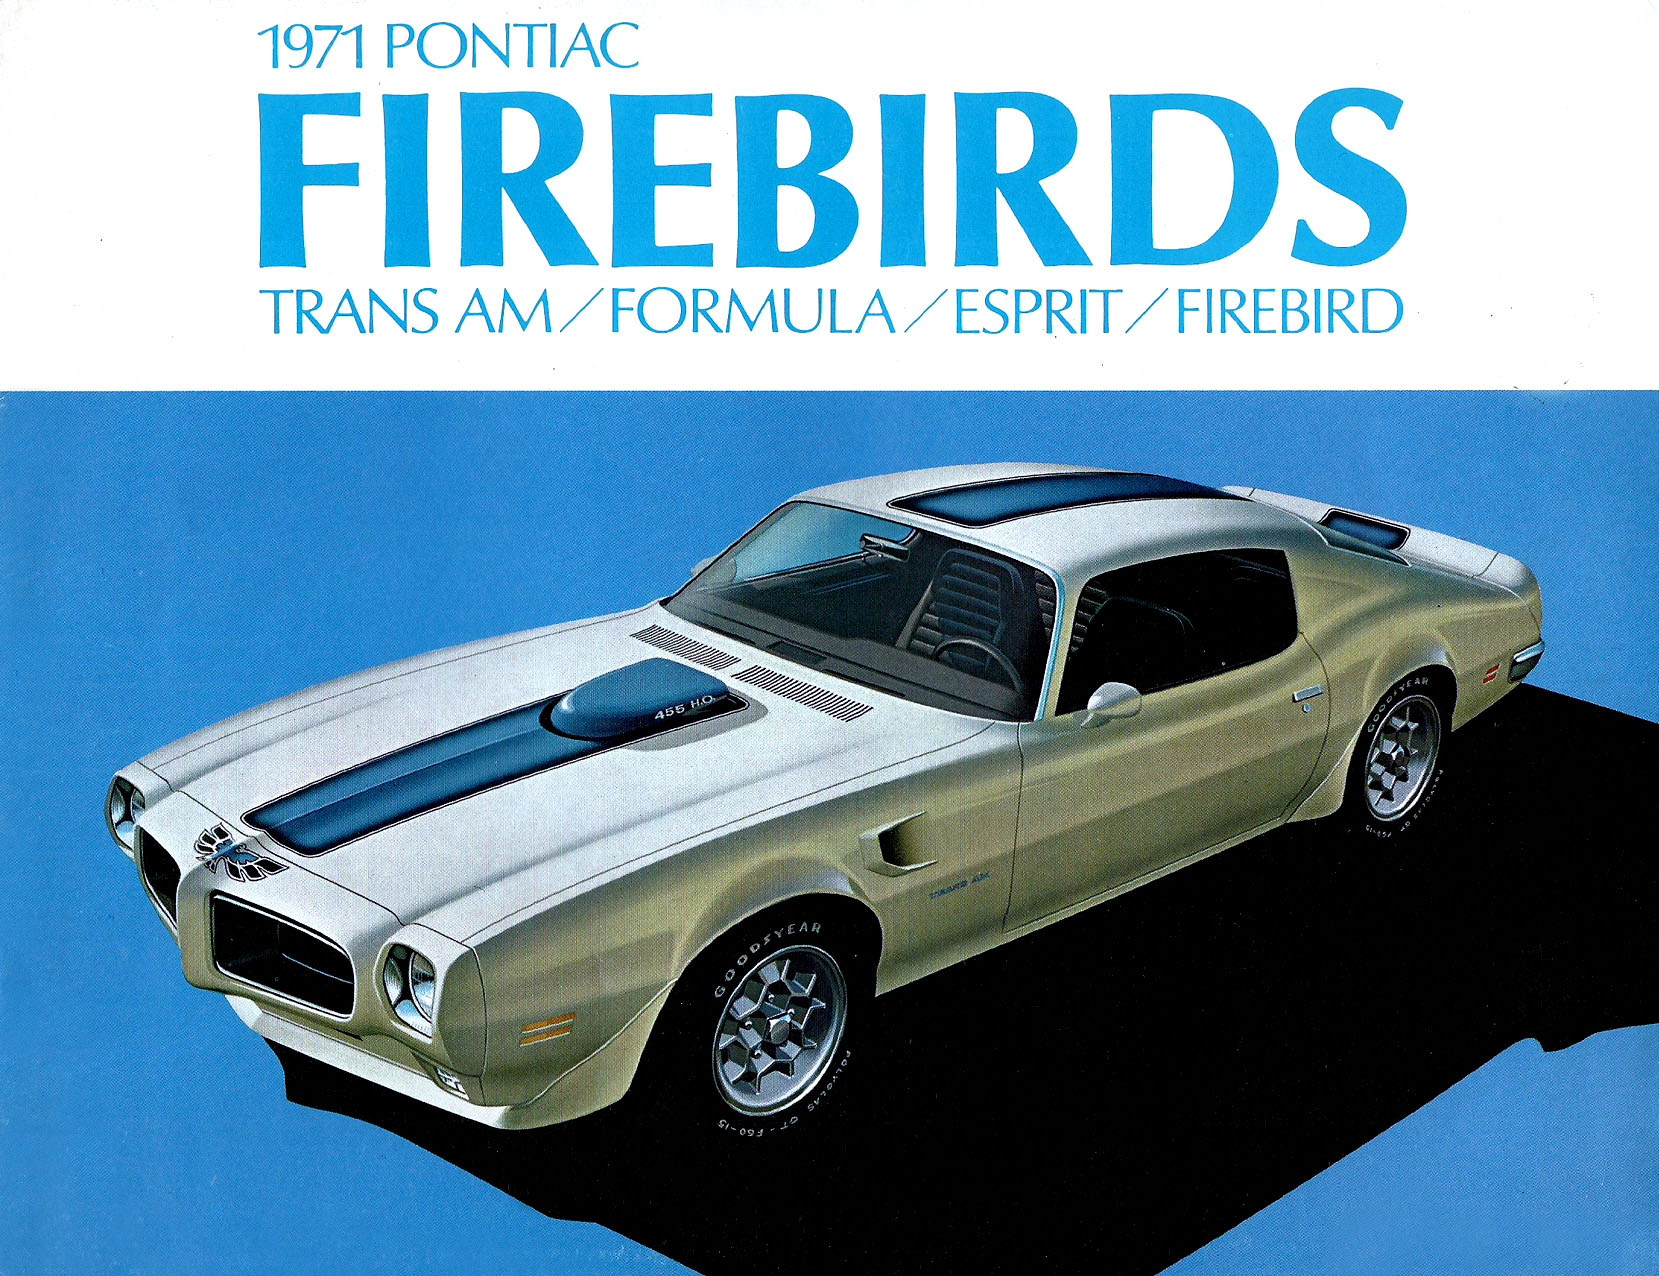 tunnelram.net_pontiac firebird and trans am 1970s (7).jpg